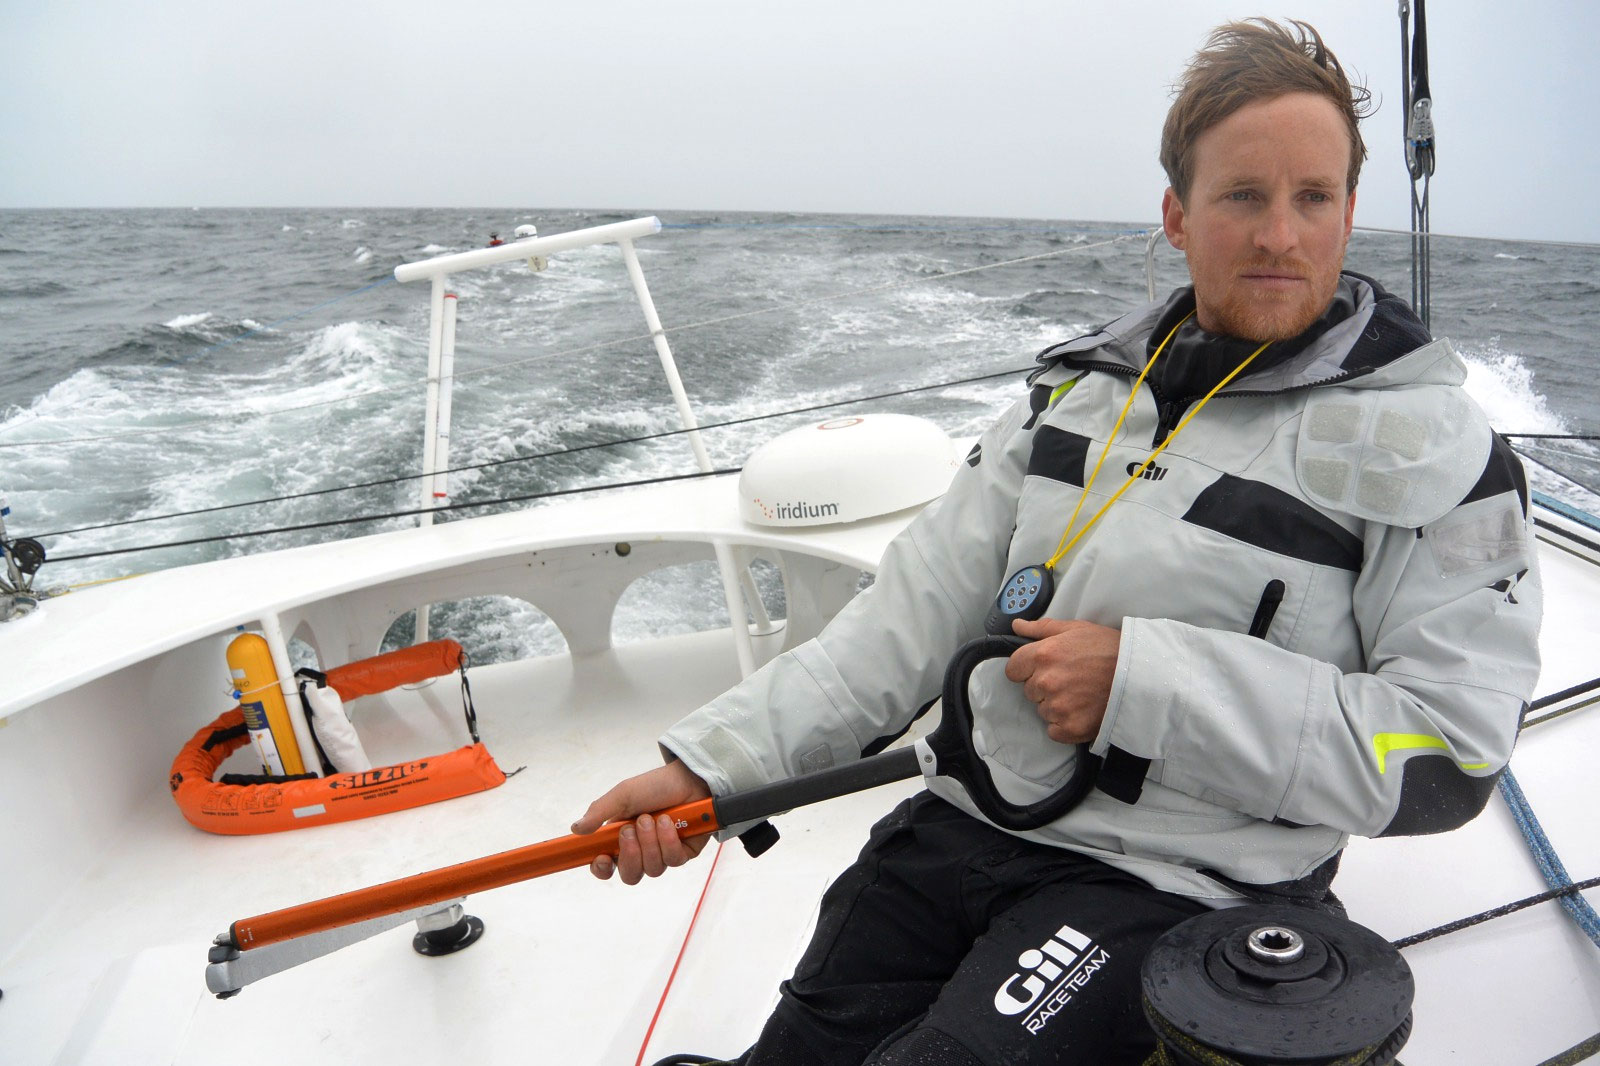 On Episode 10 of the Yacht Racing Podcast Justin Chisholm speaks to New Zealand solo ocean race skipper Conrad Colman.